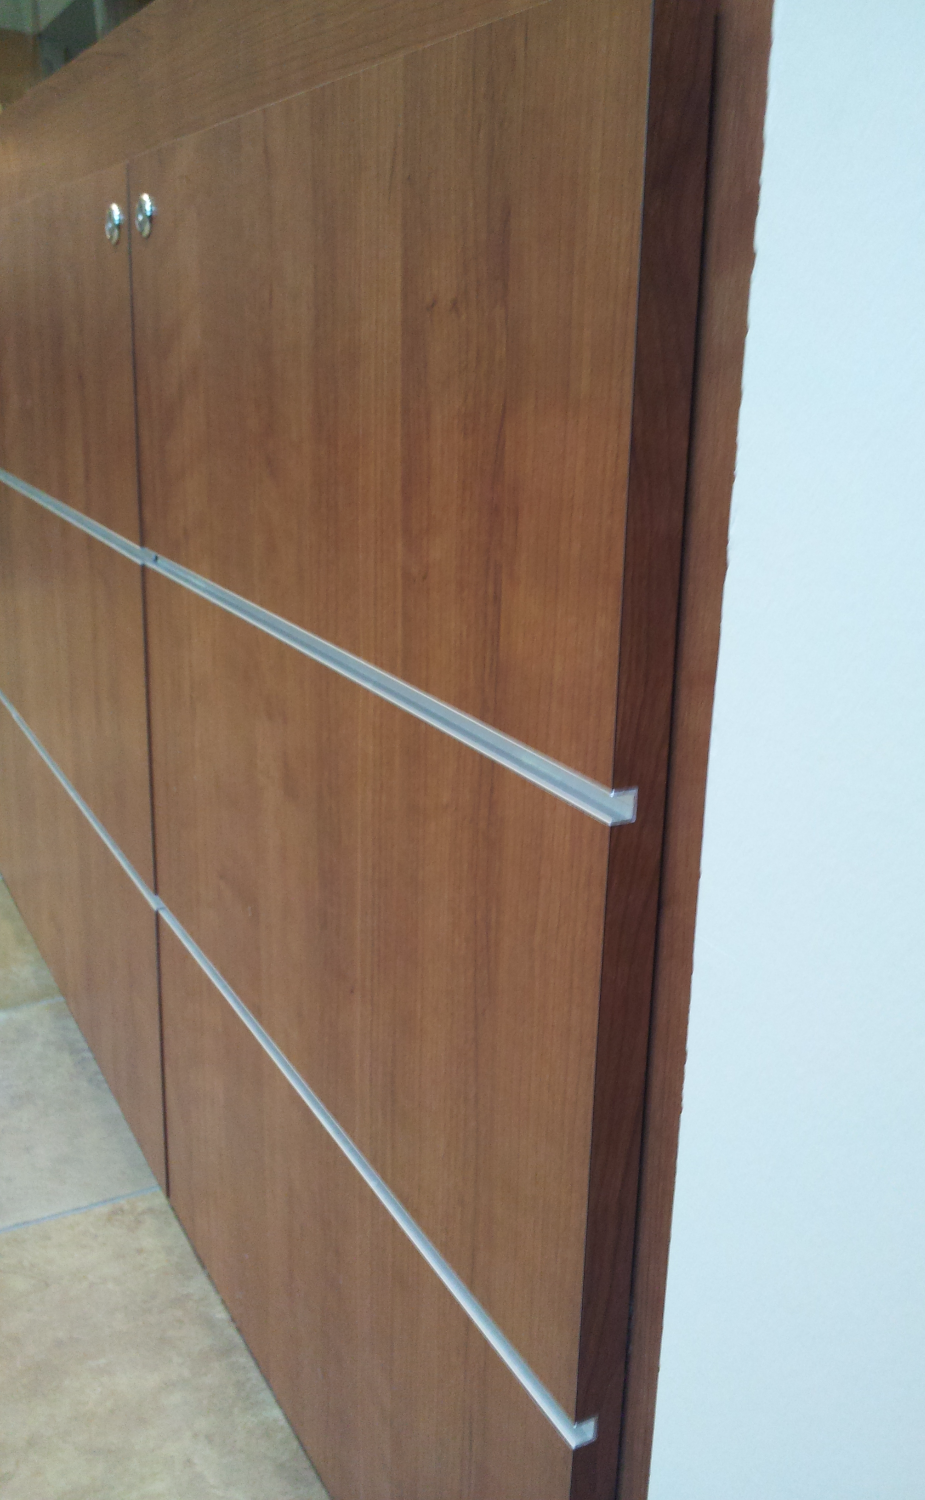 Laminate doors on steel stand